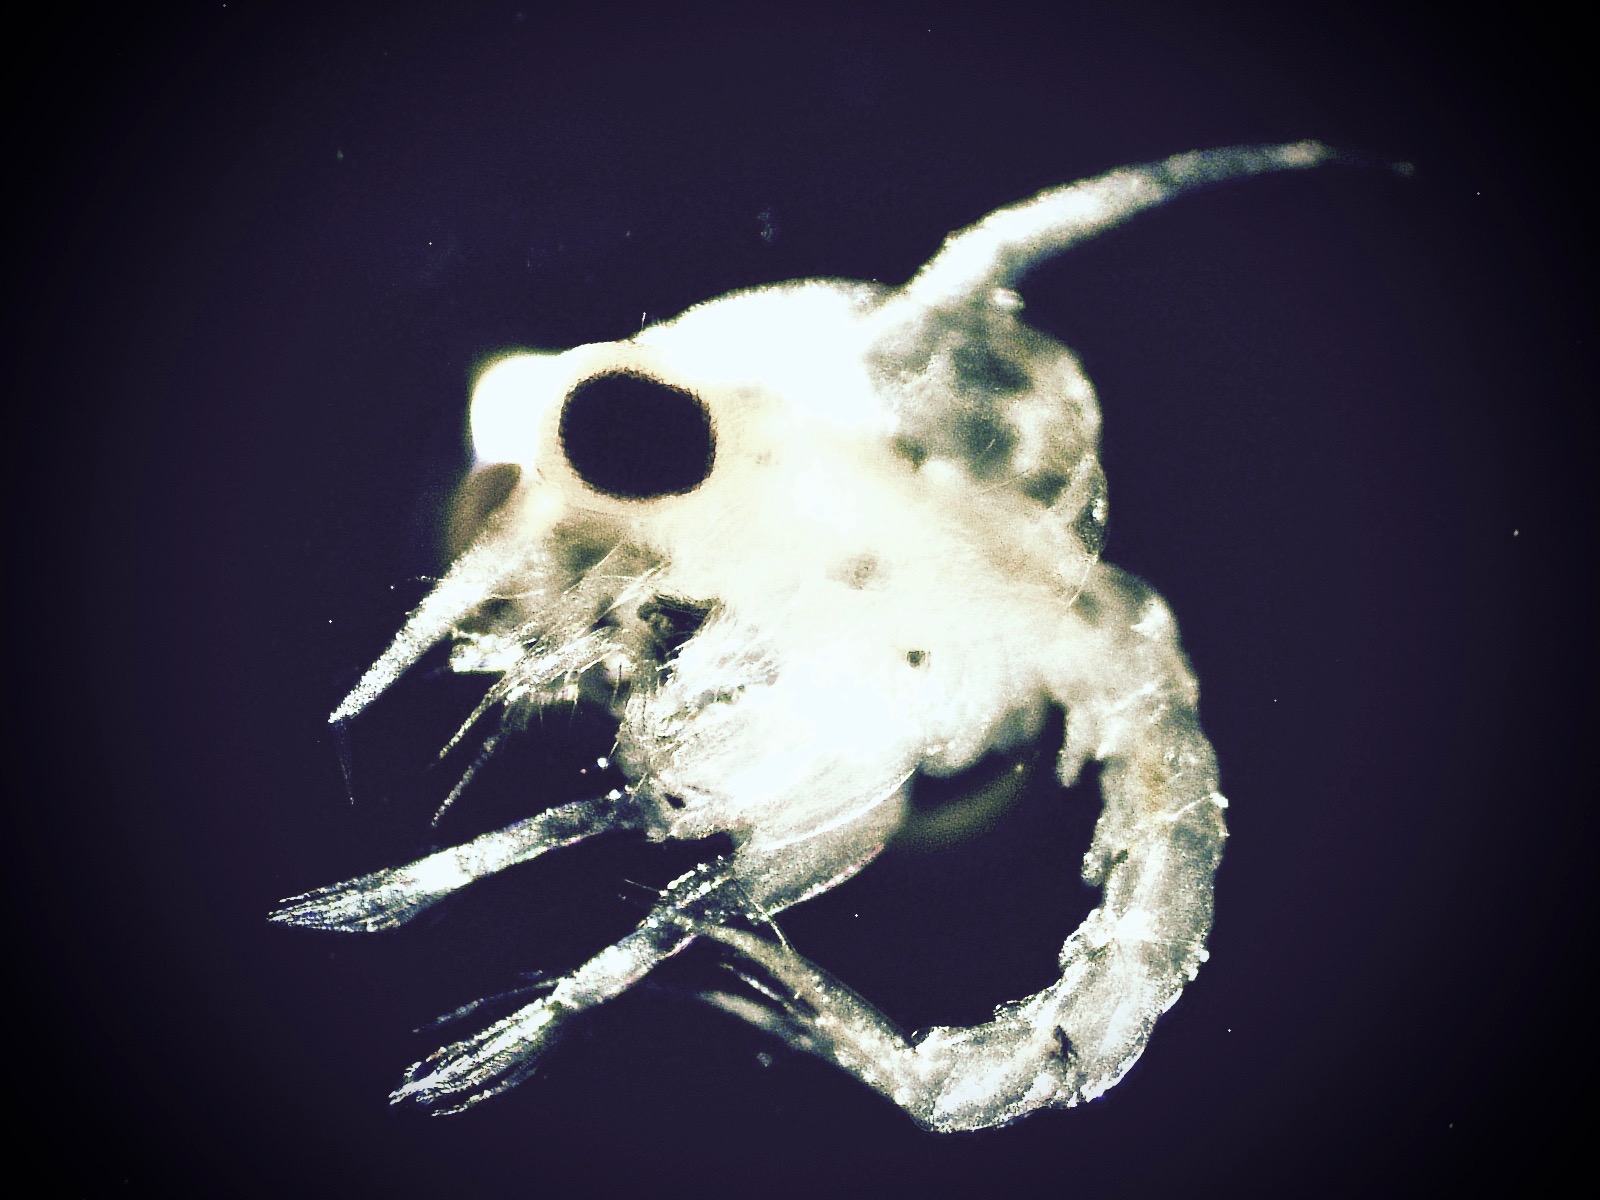 Zoea, or larvae, of the Atlantic blue crab have a distinctly different morphology than adults. They are often spawned in estuaries, where they can be exposed to low dissolved oxygen and acidified conditions (photo by Stephen Tomasetti).